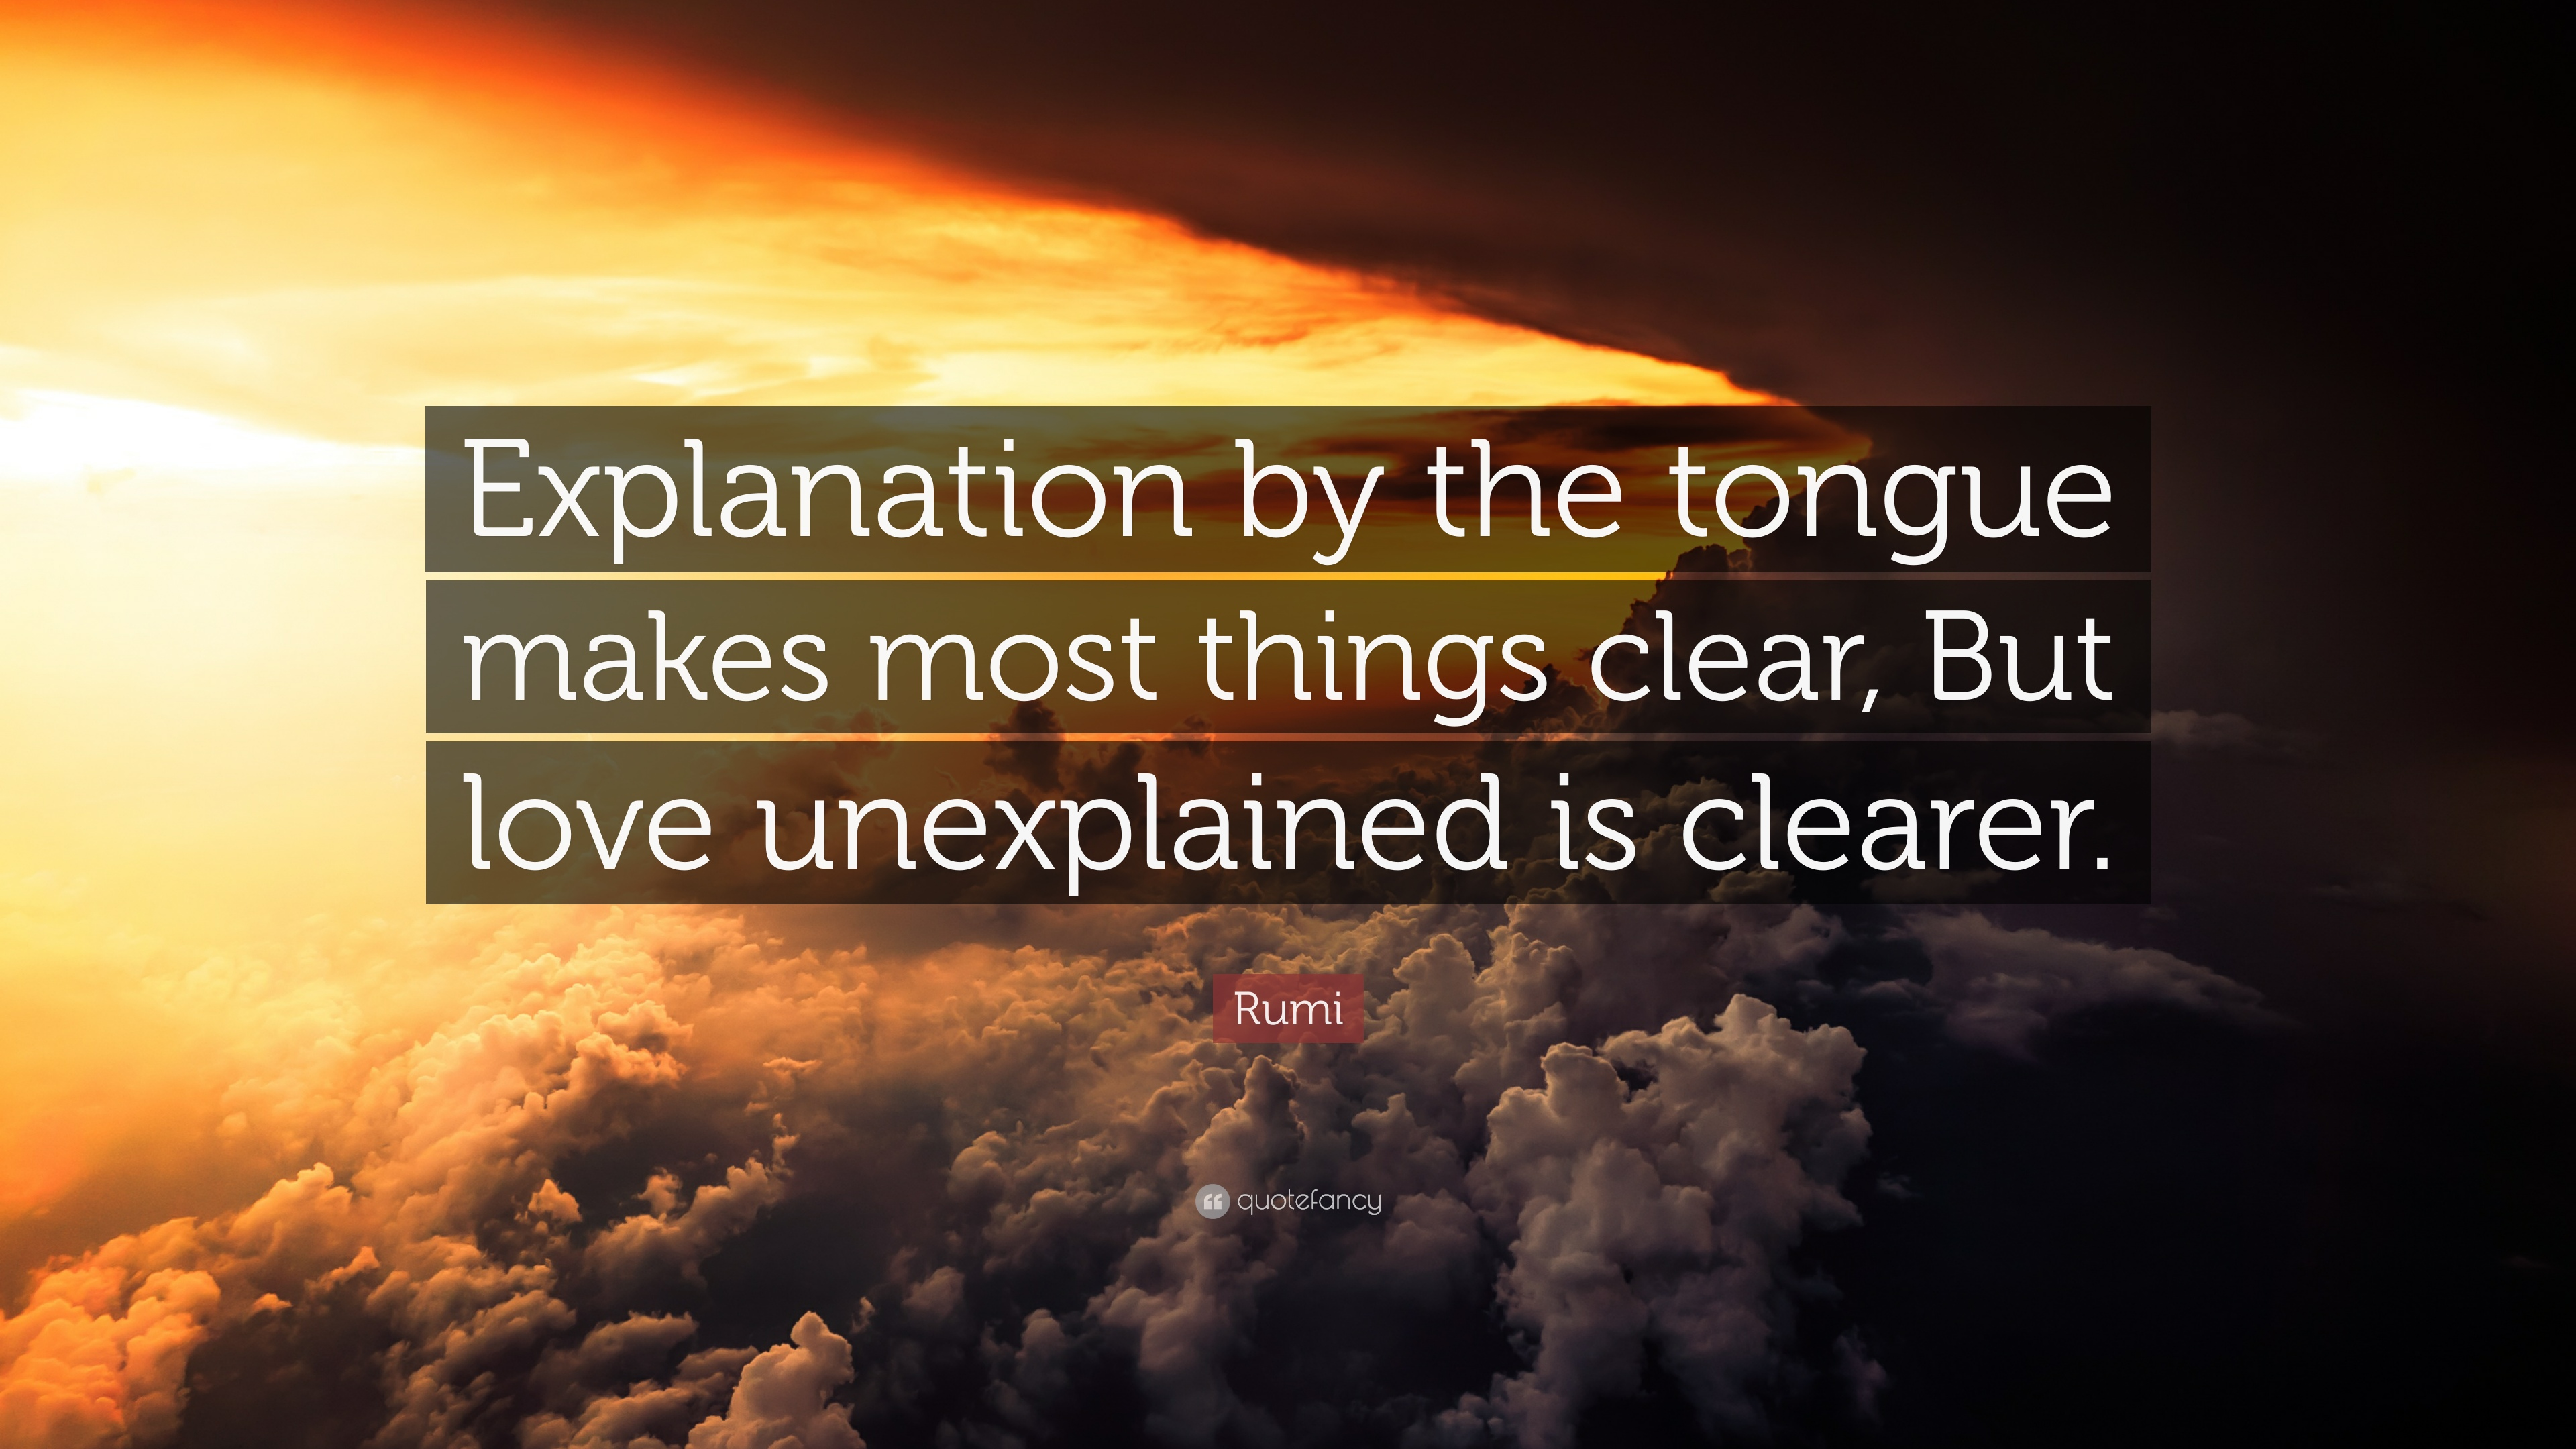 rumi quote explanation by the tongue makes most things